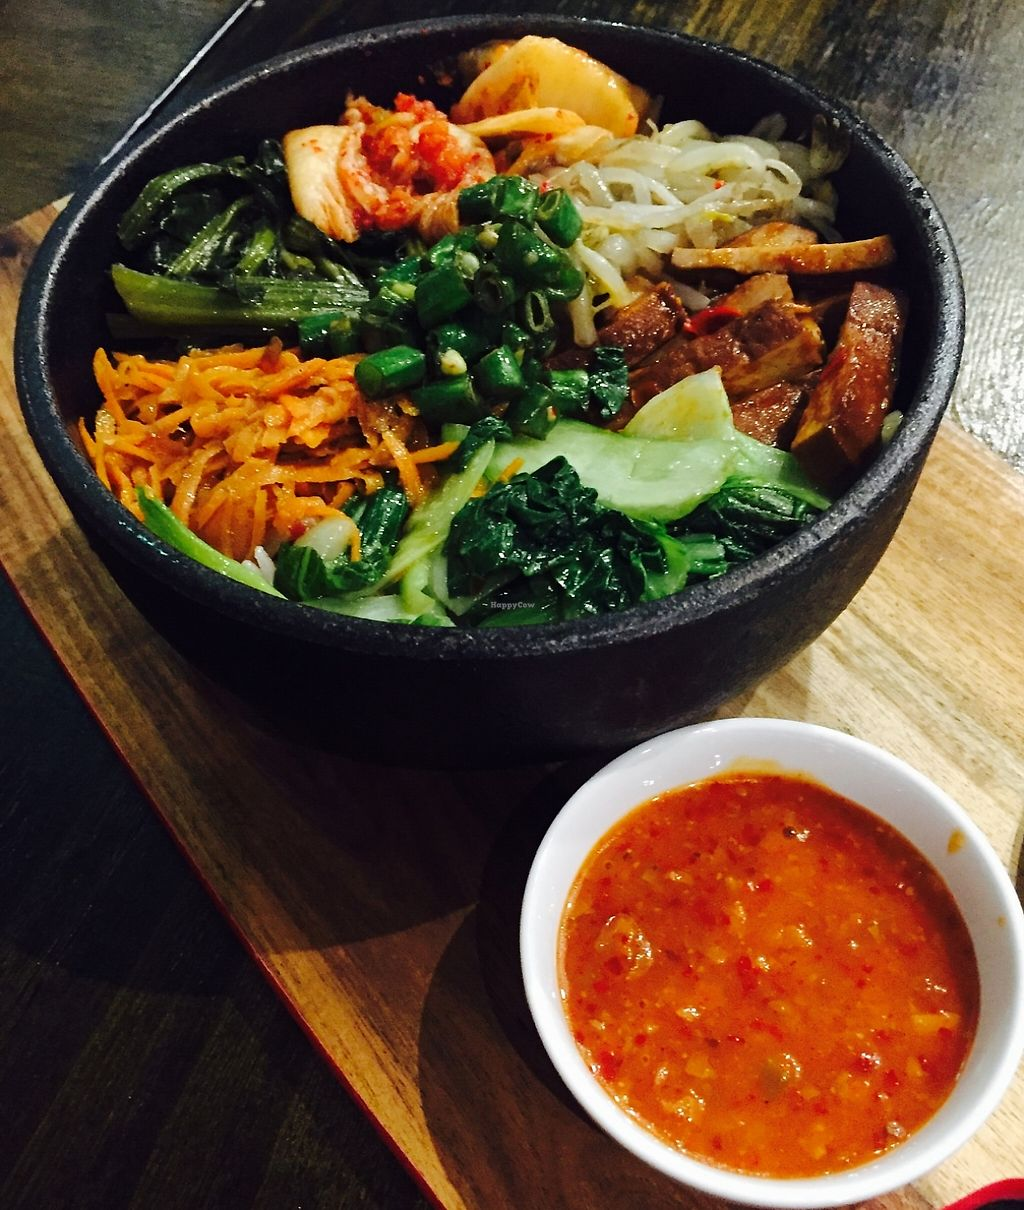 """Photo of Vegeme  by <a href=""""/members/profile/karlaess"""">karlaess</a> <br/>Bibimbap <br/> May 14, 2016  - <a href='/contact/abuse/image/64155/251825'>Report</a>"""